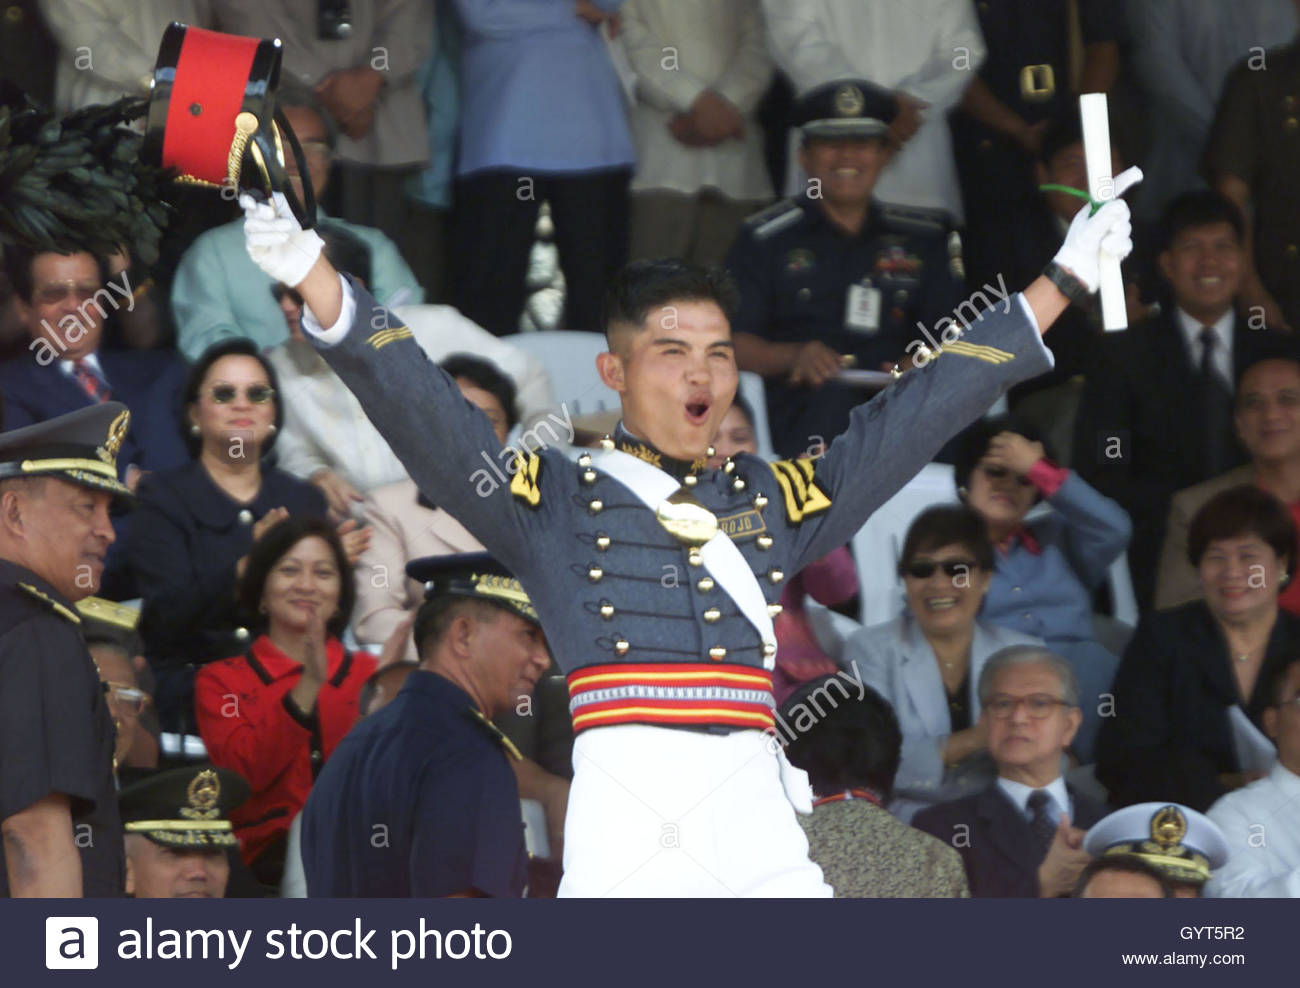 filipino military cadet waves to the crowd after graduating last filipino military cadet nasser arrojo waves to the crowd after graduating last